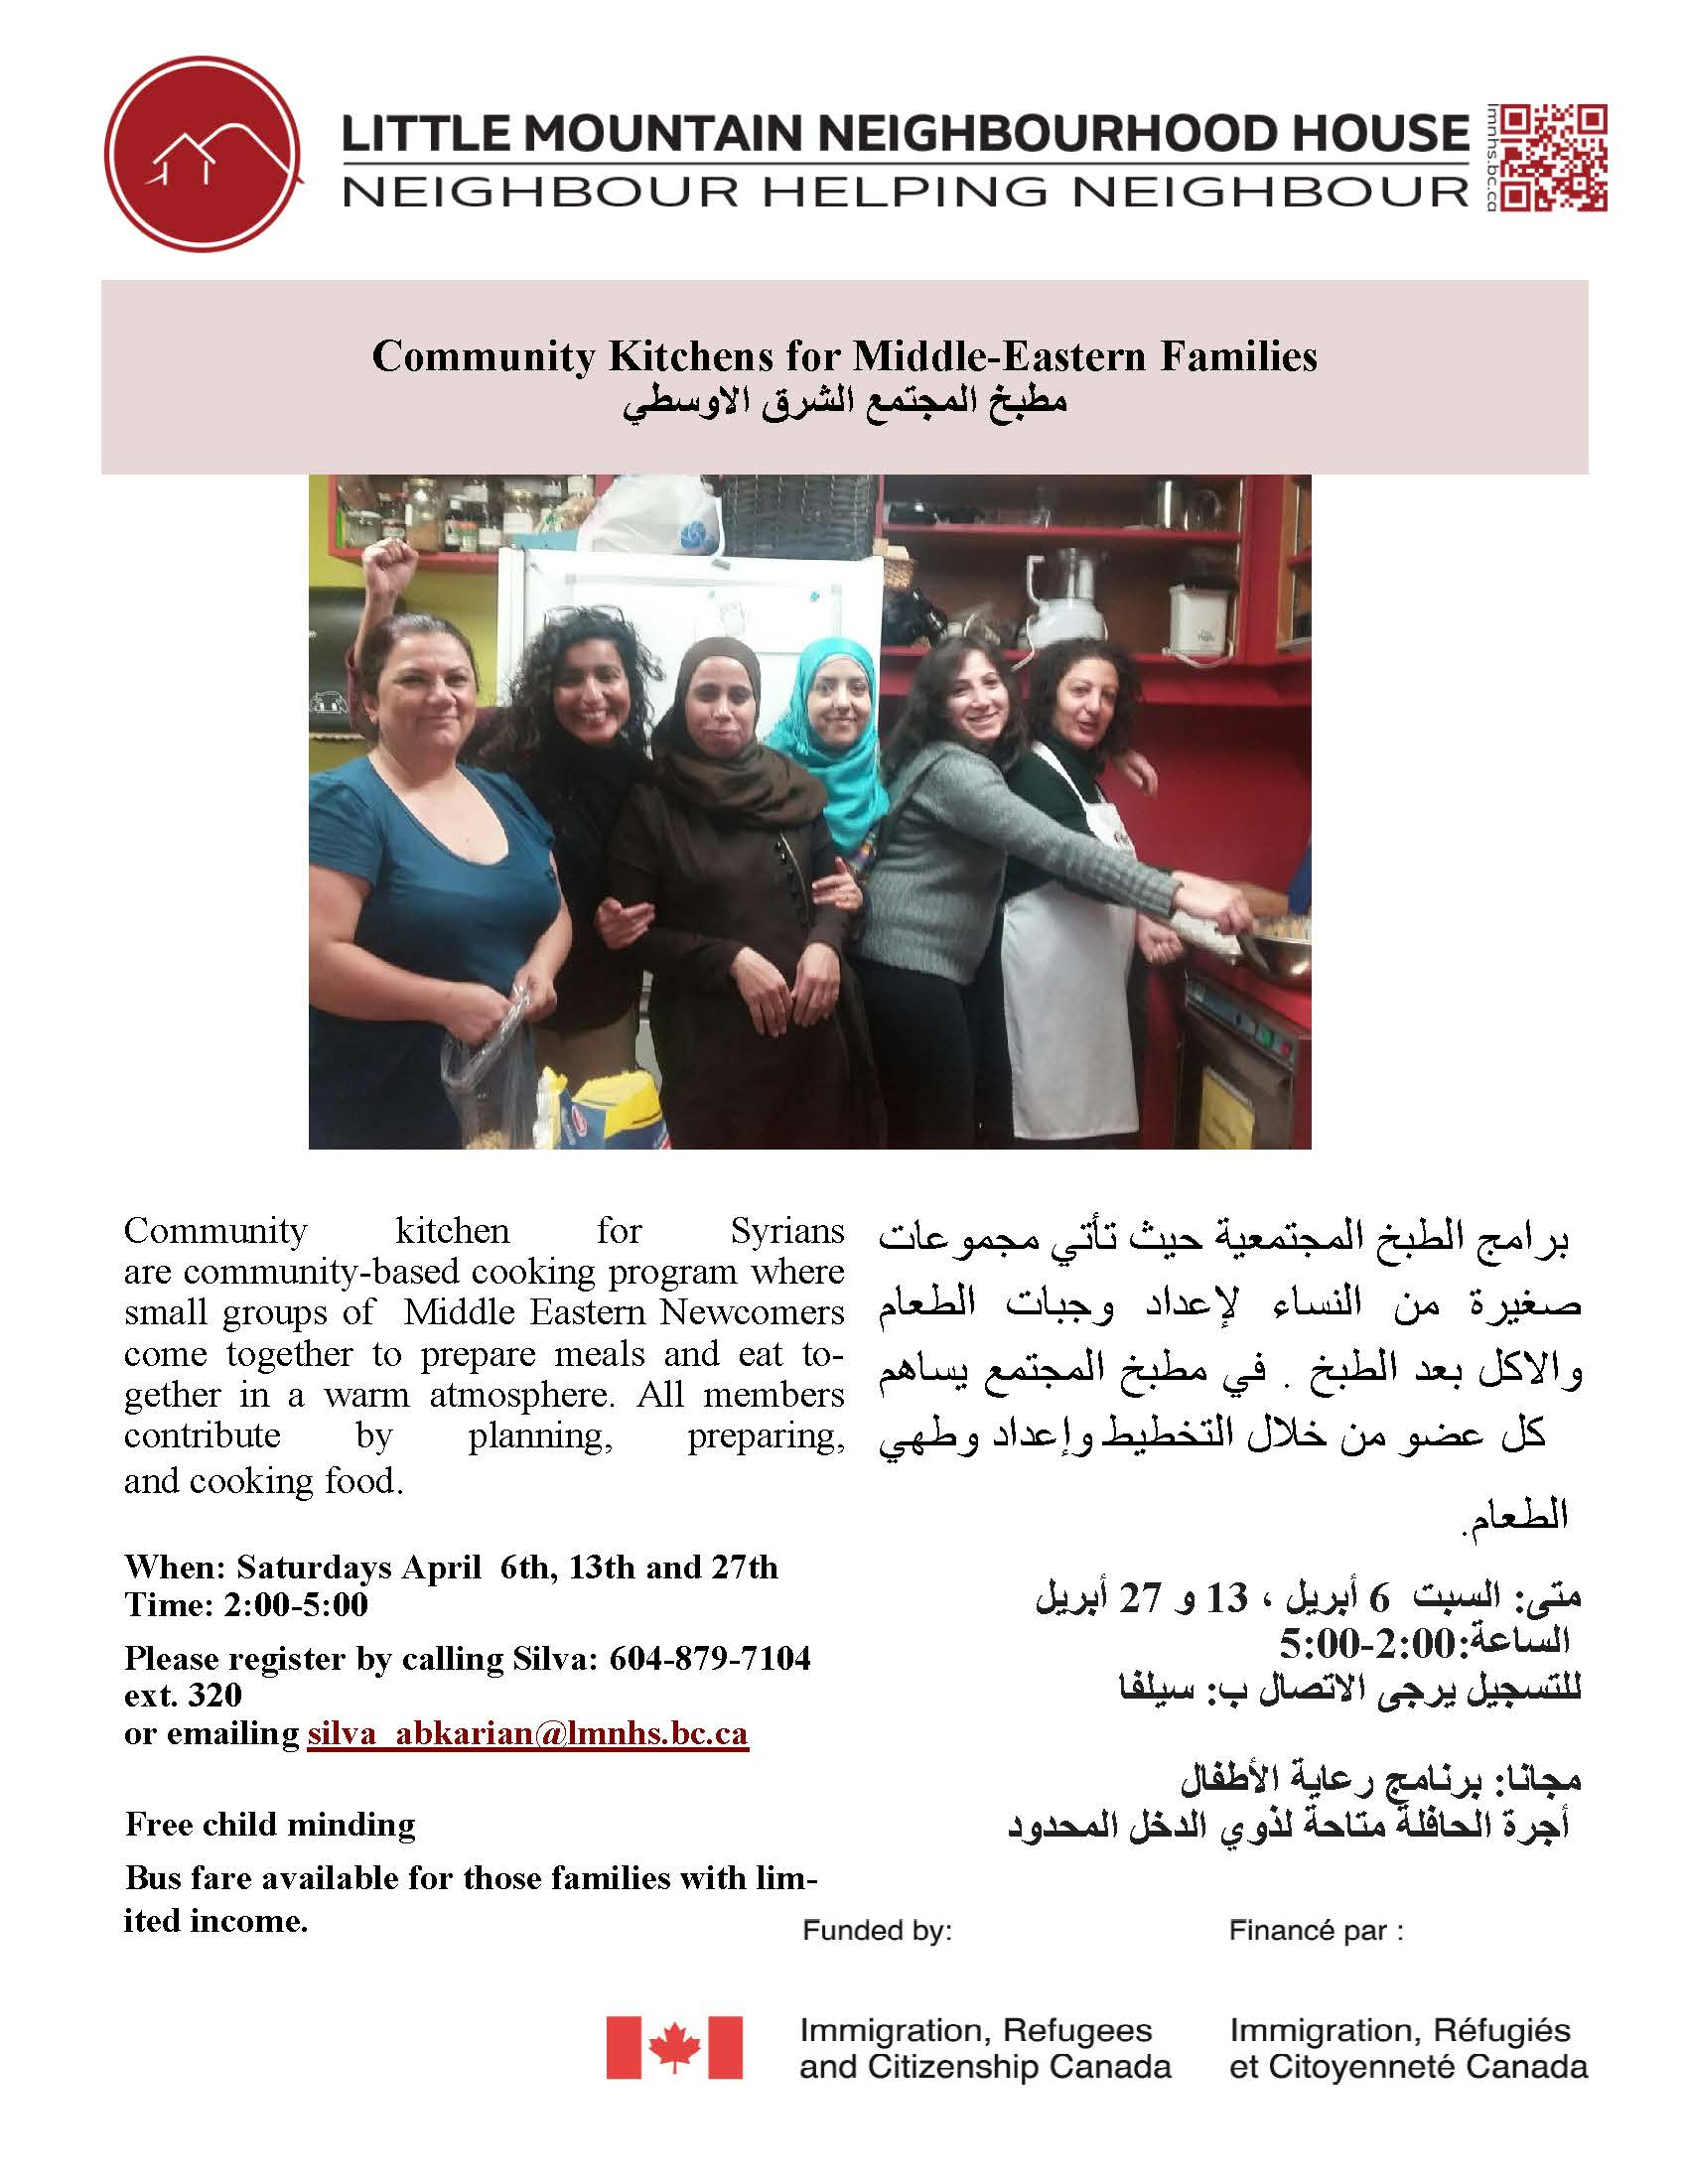 Community Kitchens for Middle Eastern Families 2019